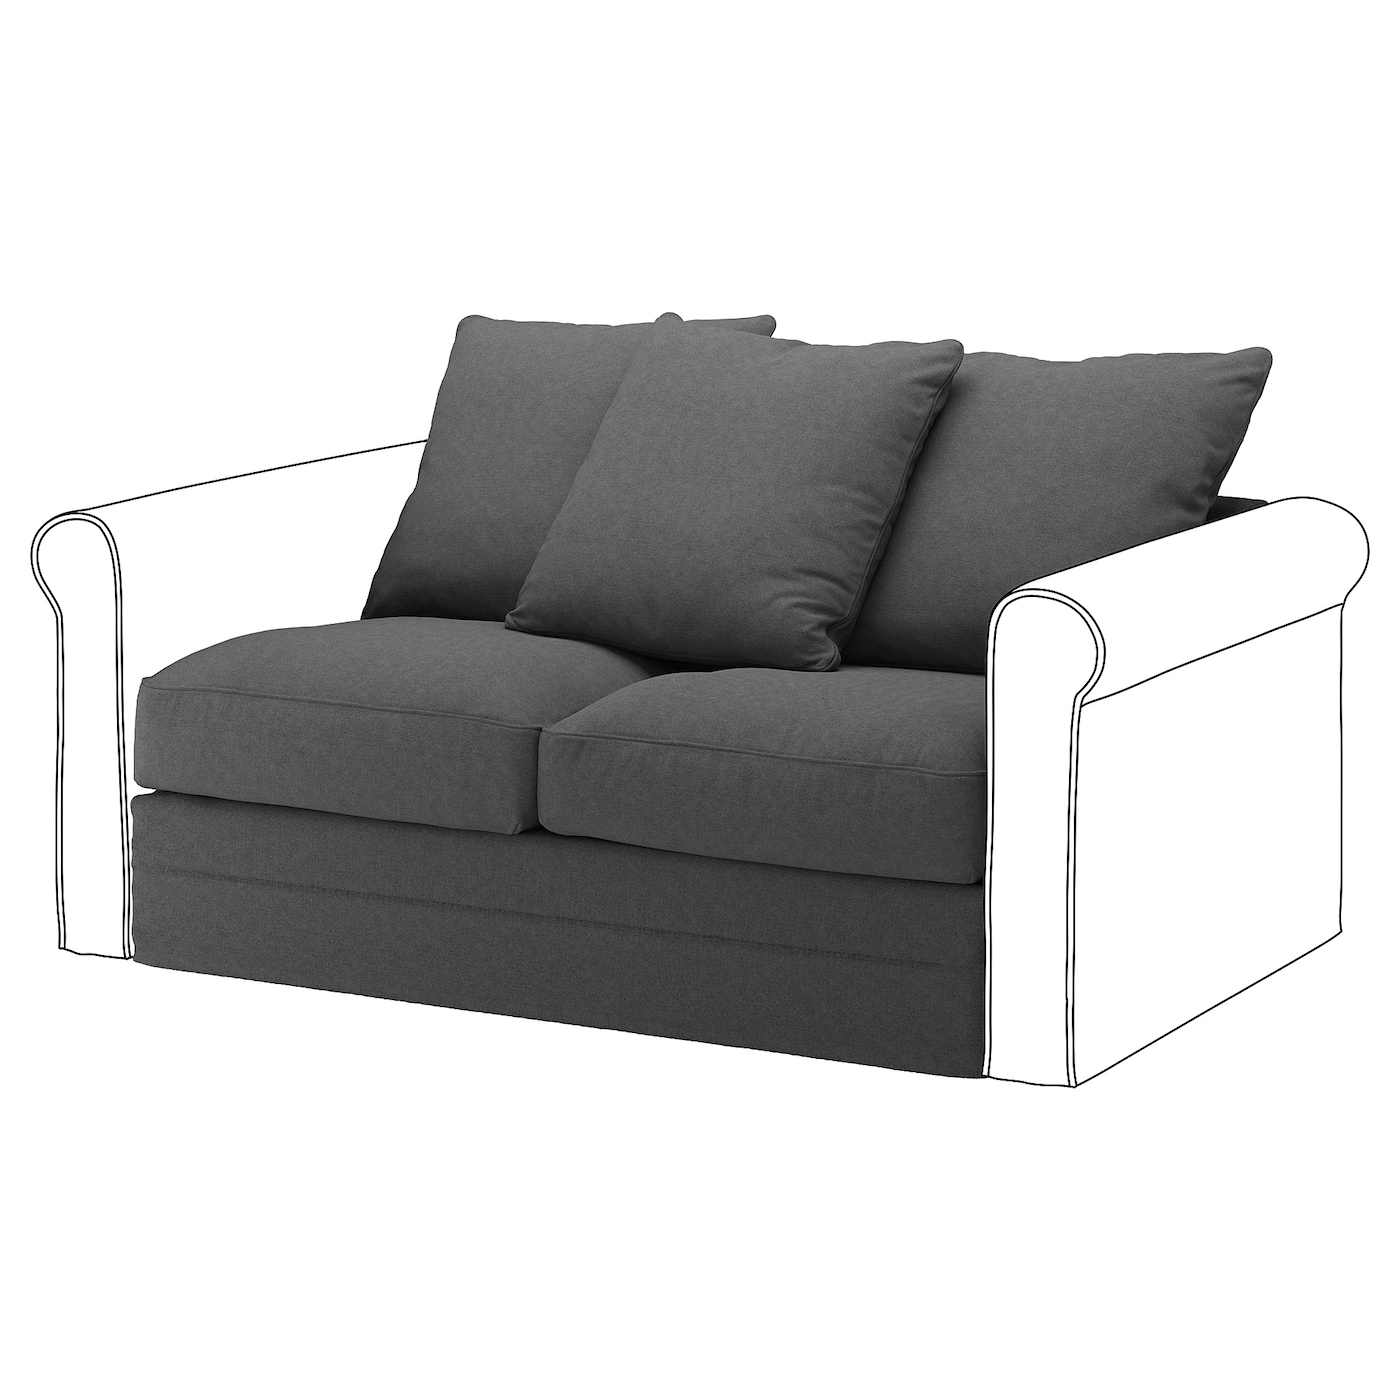 IKEA GRÖNLID 2-seat section 10 year guarantee. Read about the terms in the guarantee brochure.